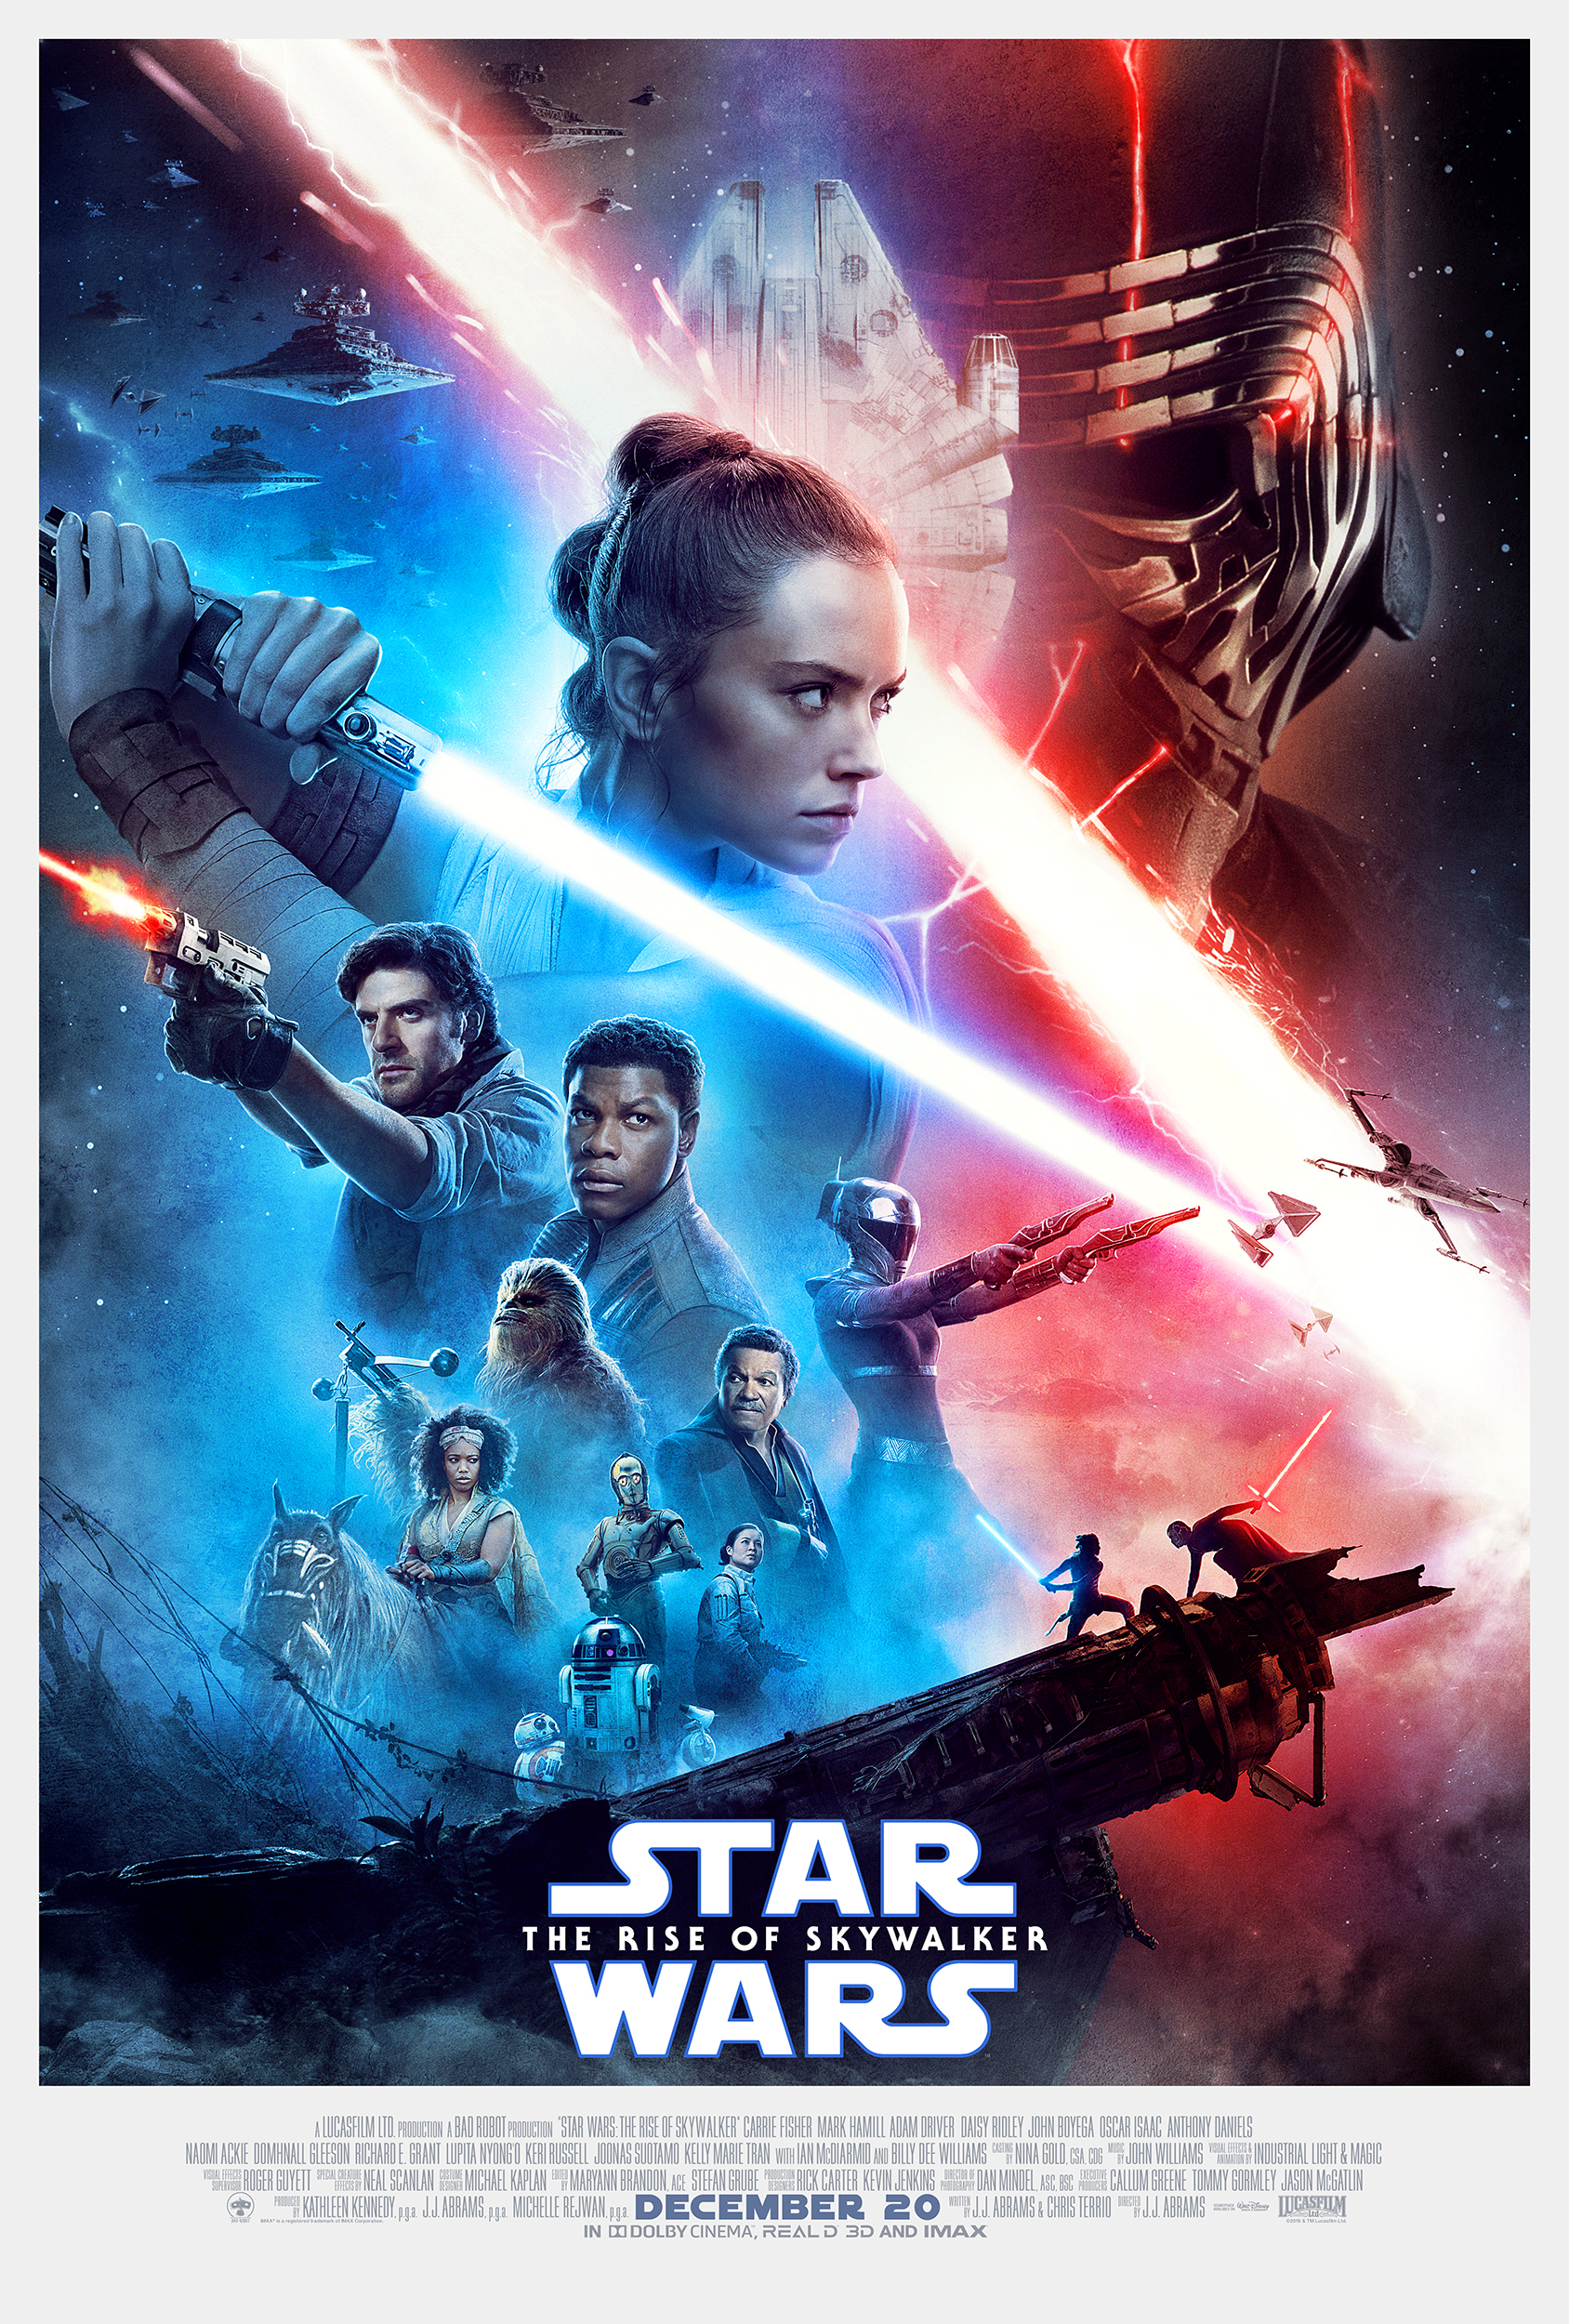 The Rise Of Skywalker posters